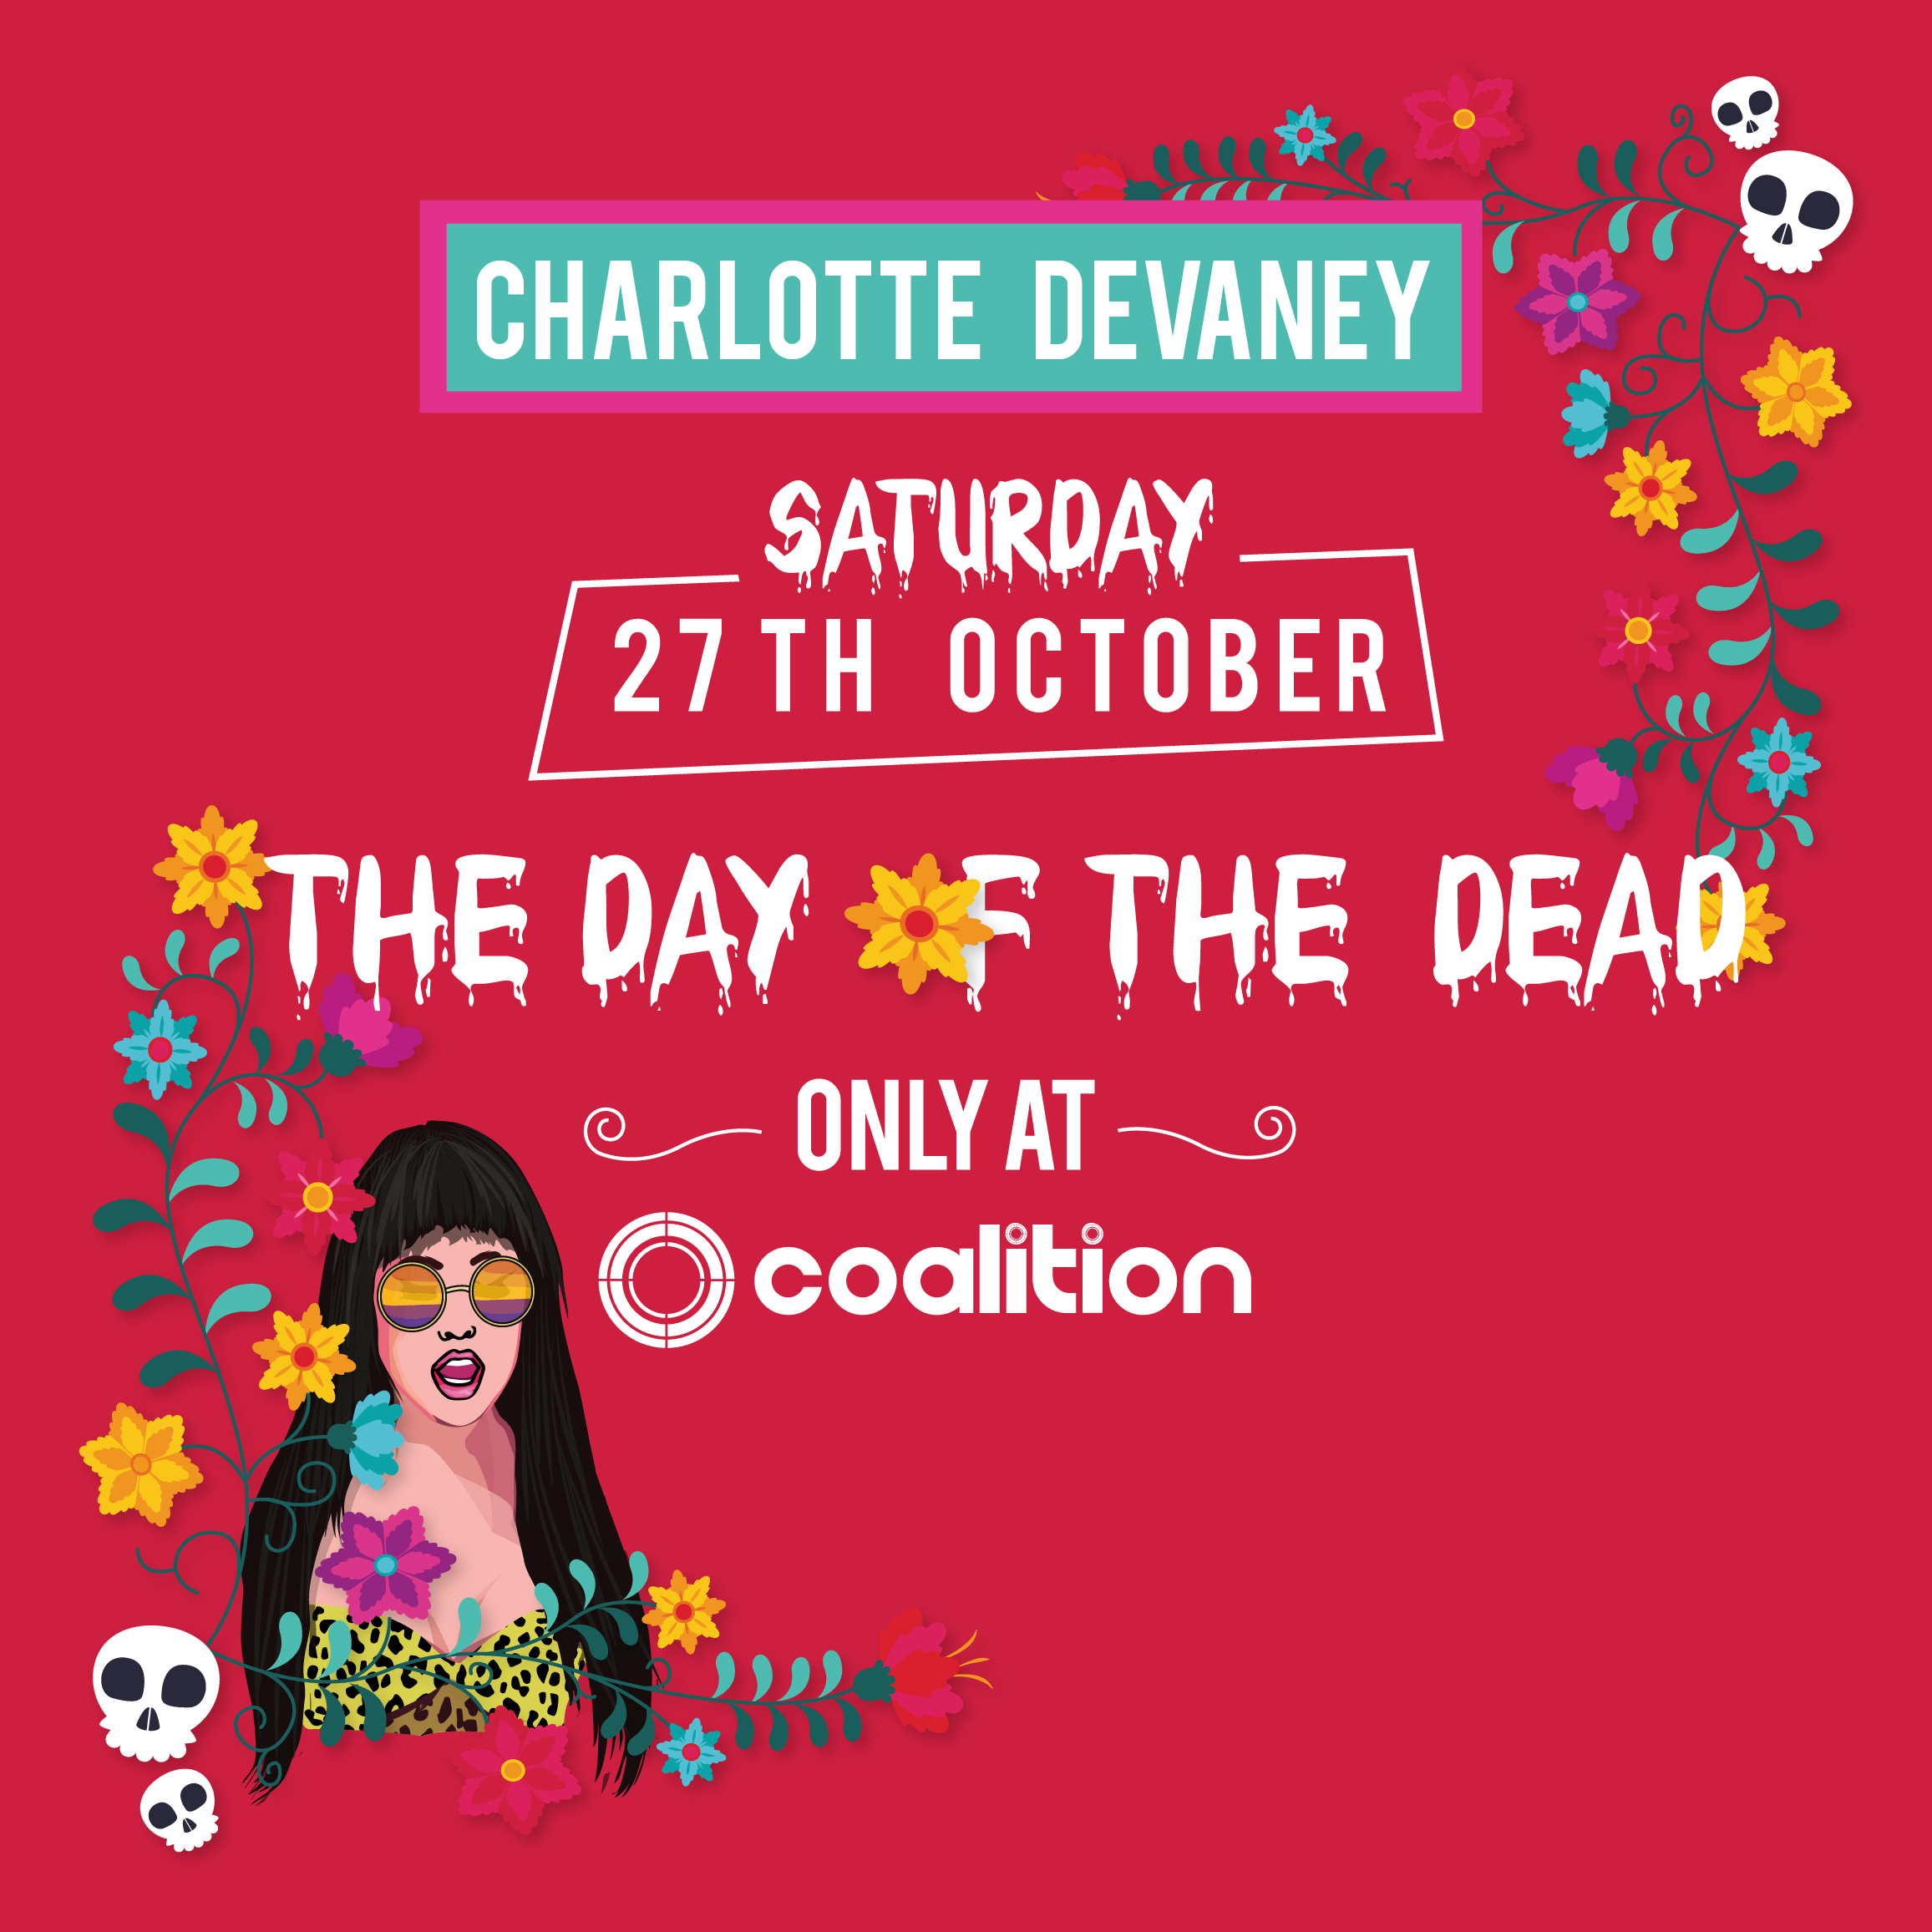 The Day Of The Dead w/ Charlotte Devaney at Coalition